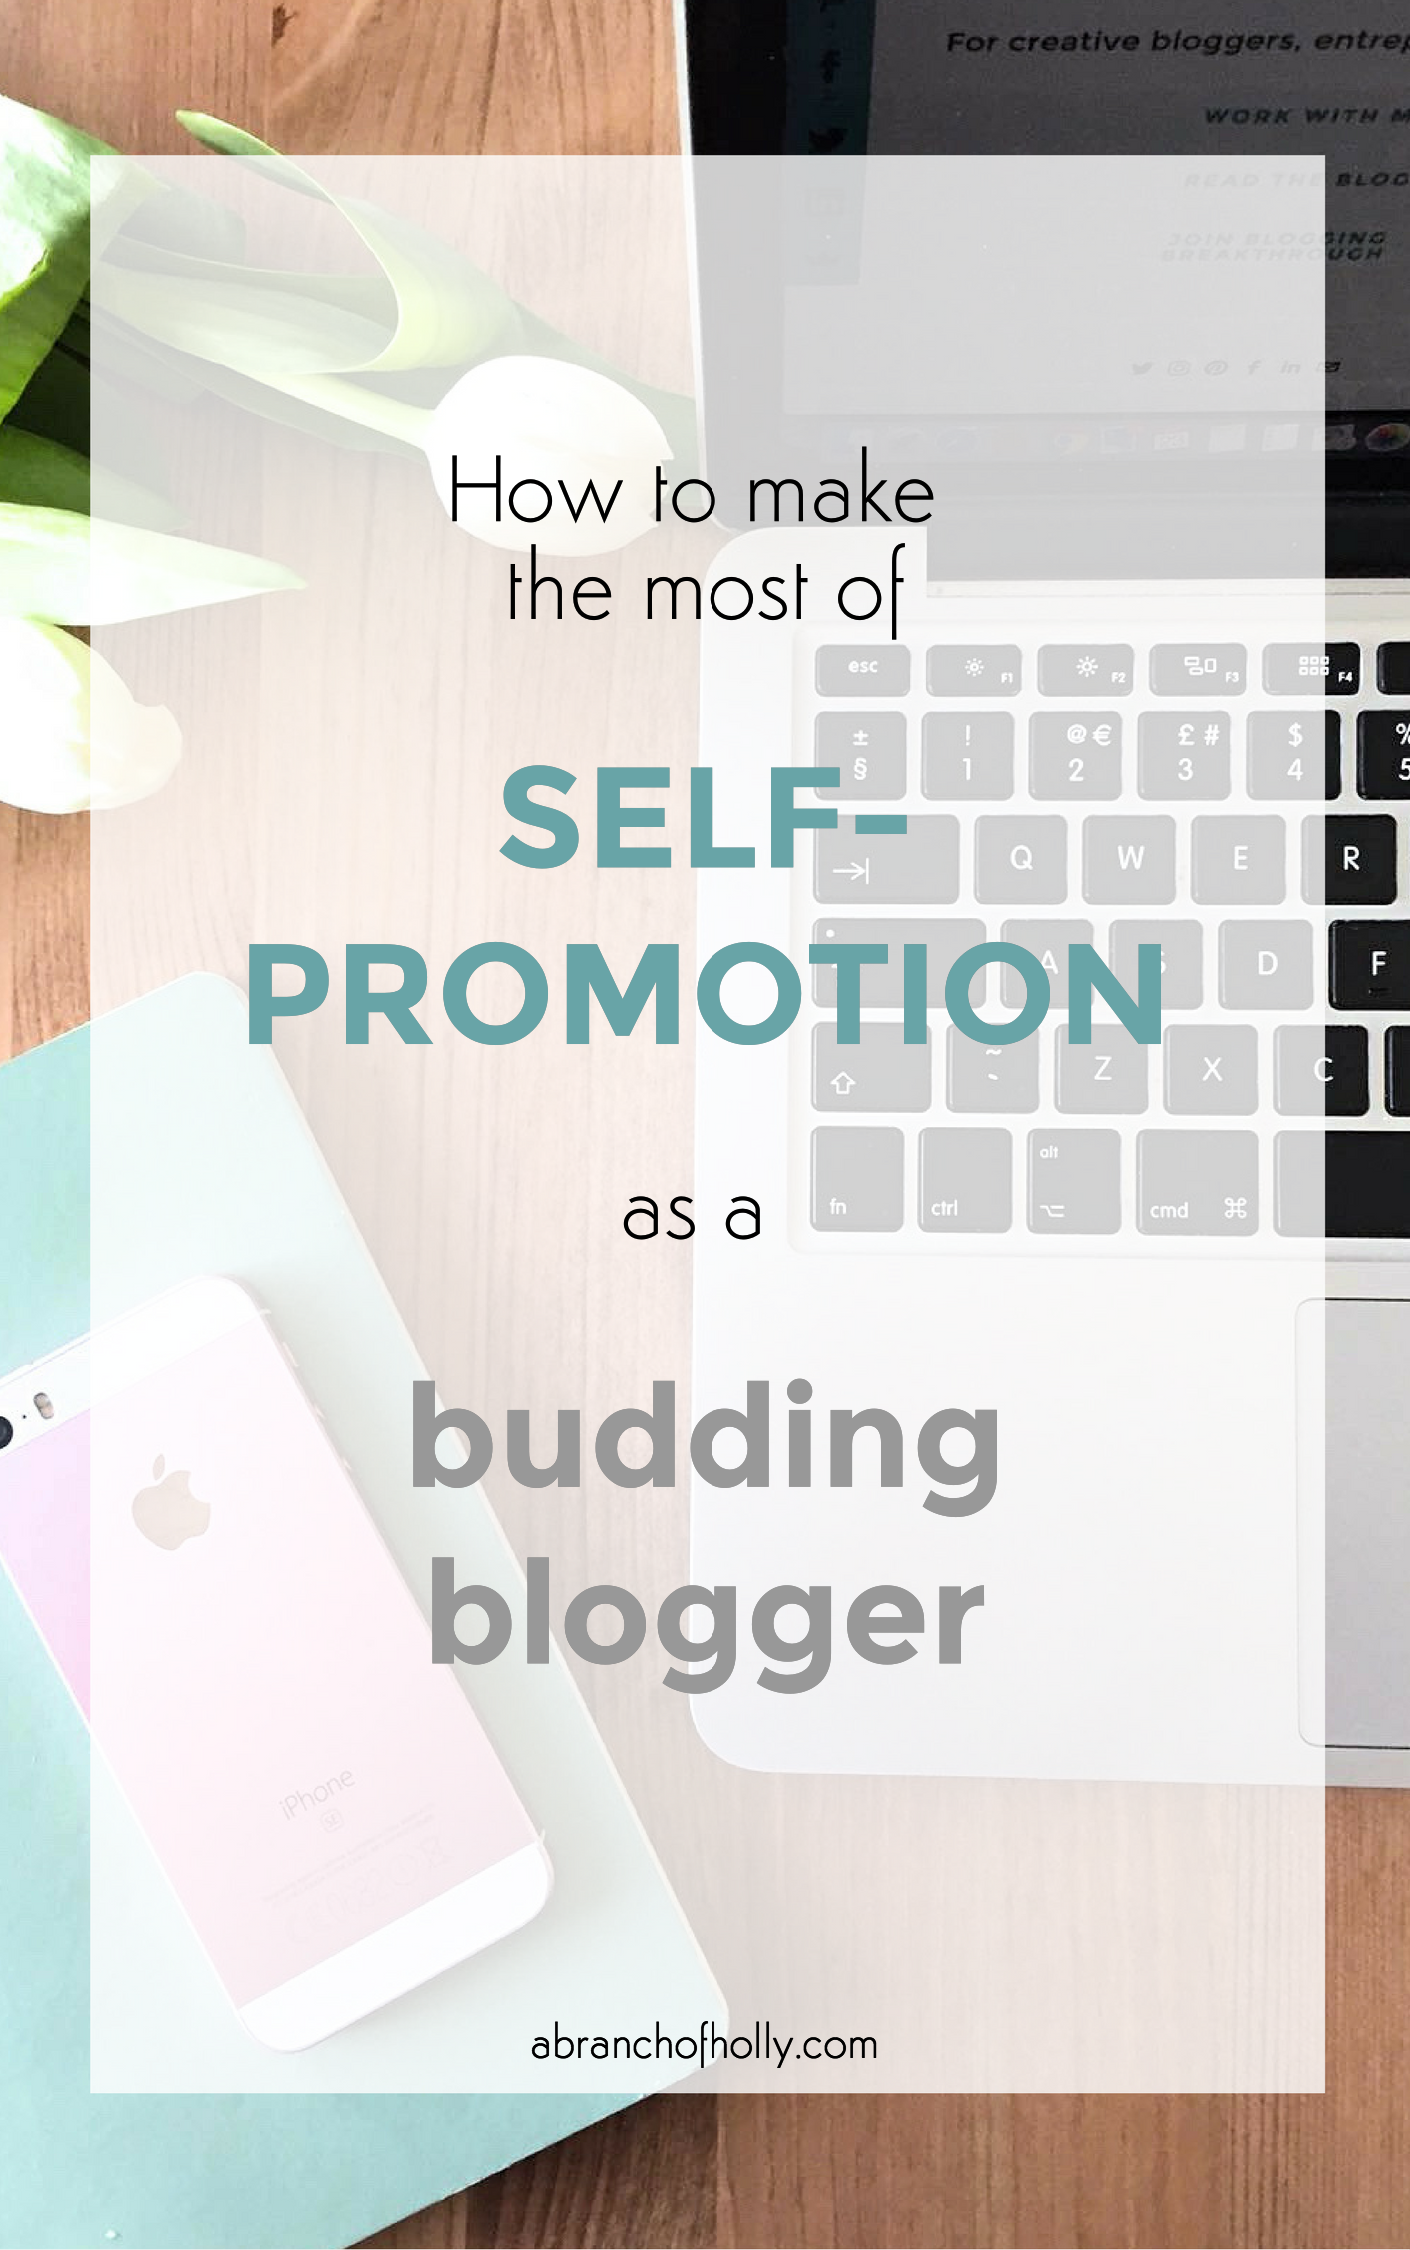 how to make the most of self-promotion as a budding blogger